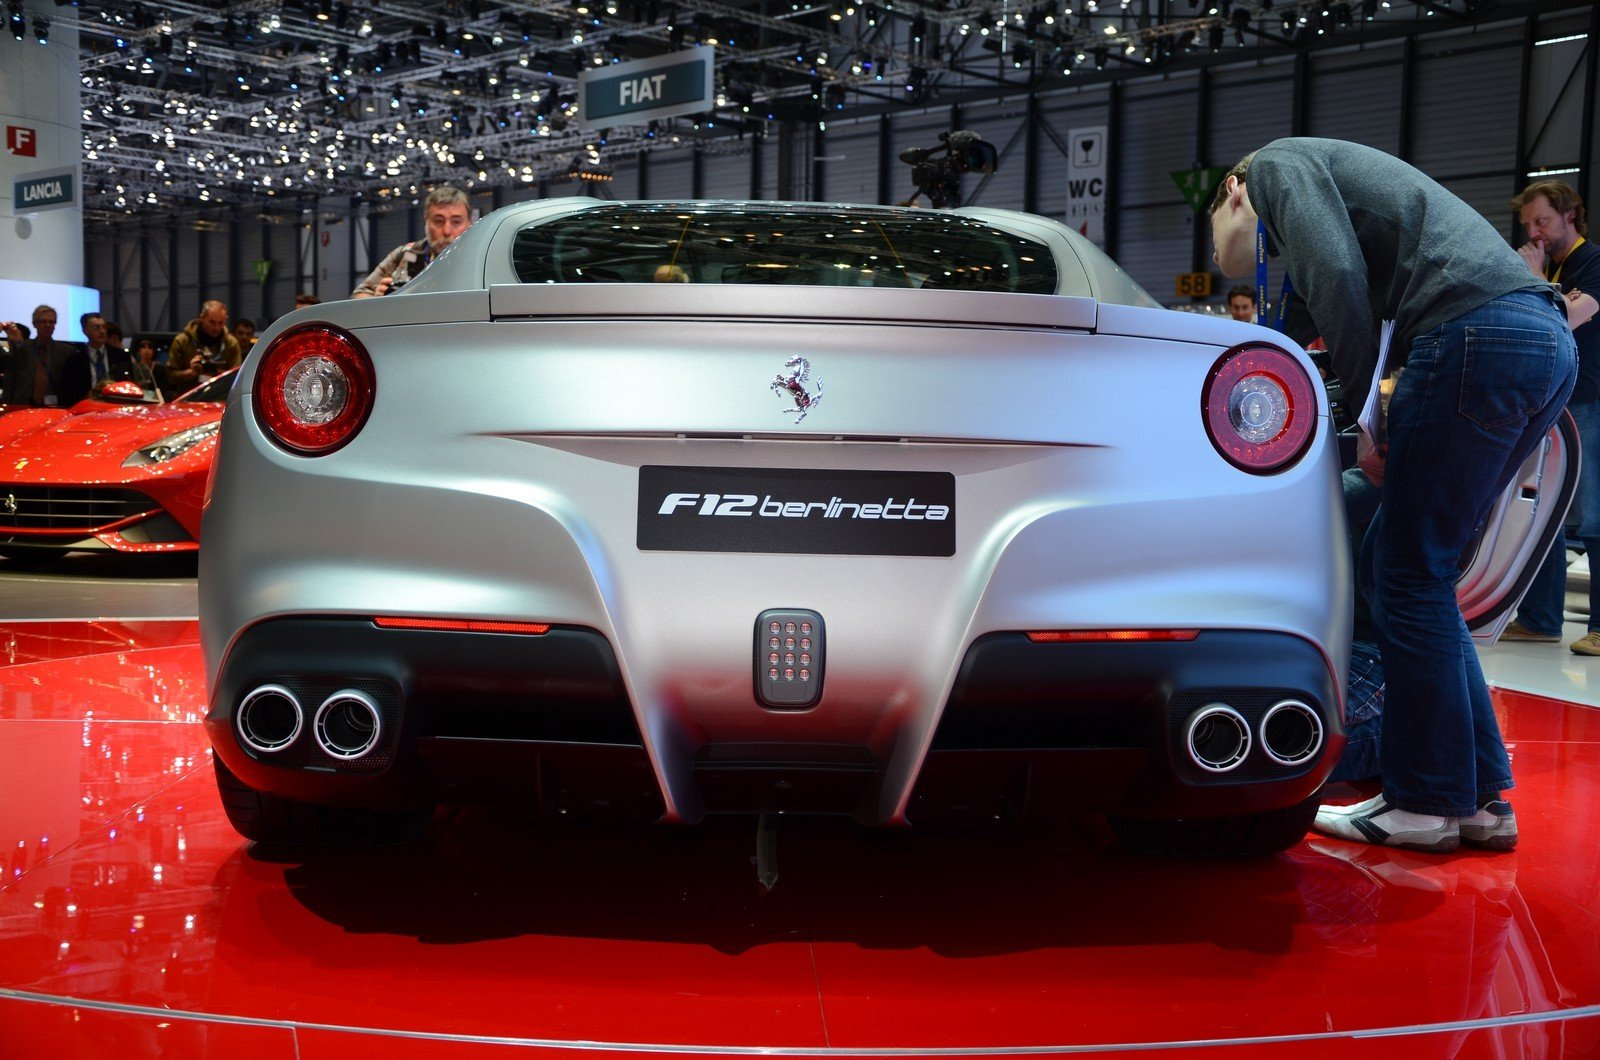 2013 ferrari f12 berlinetta picture 441803 car review top speed. Black Bedroom Furniture Sets. Home Design Ideas